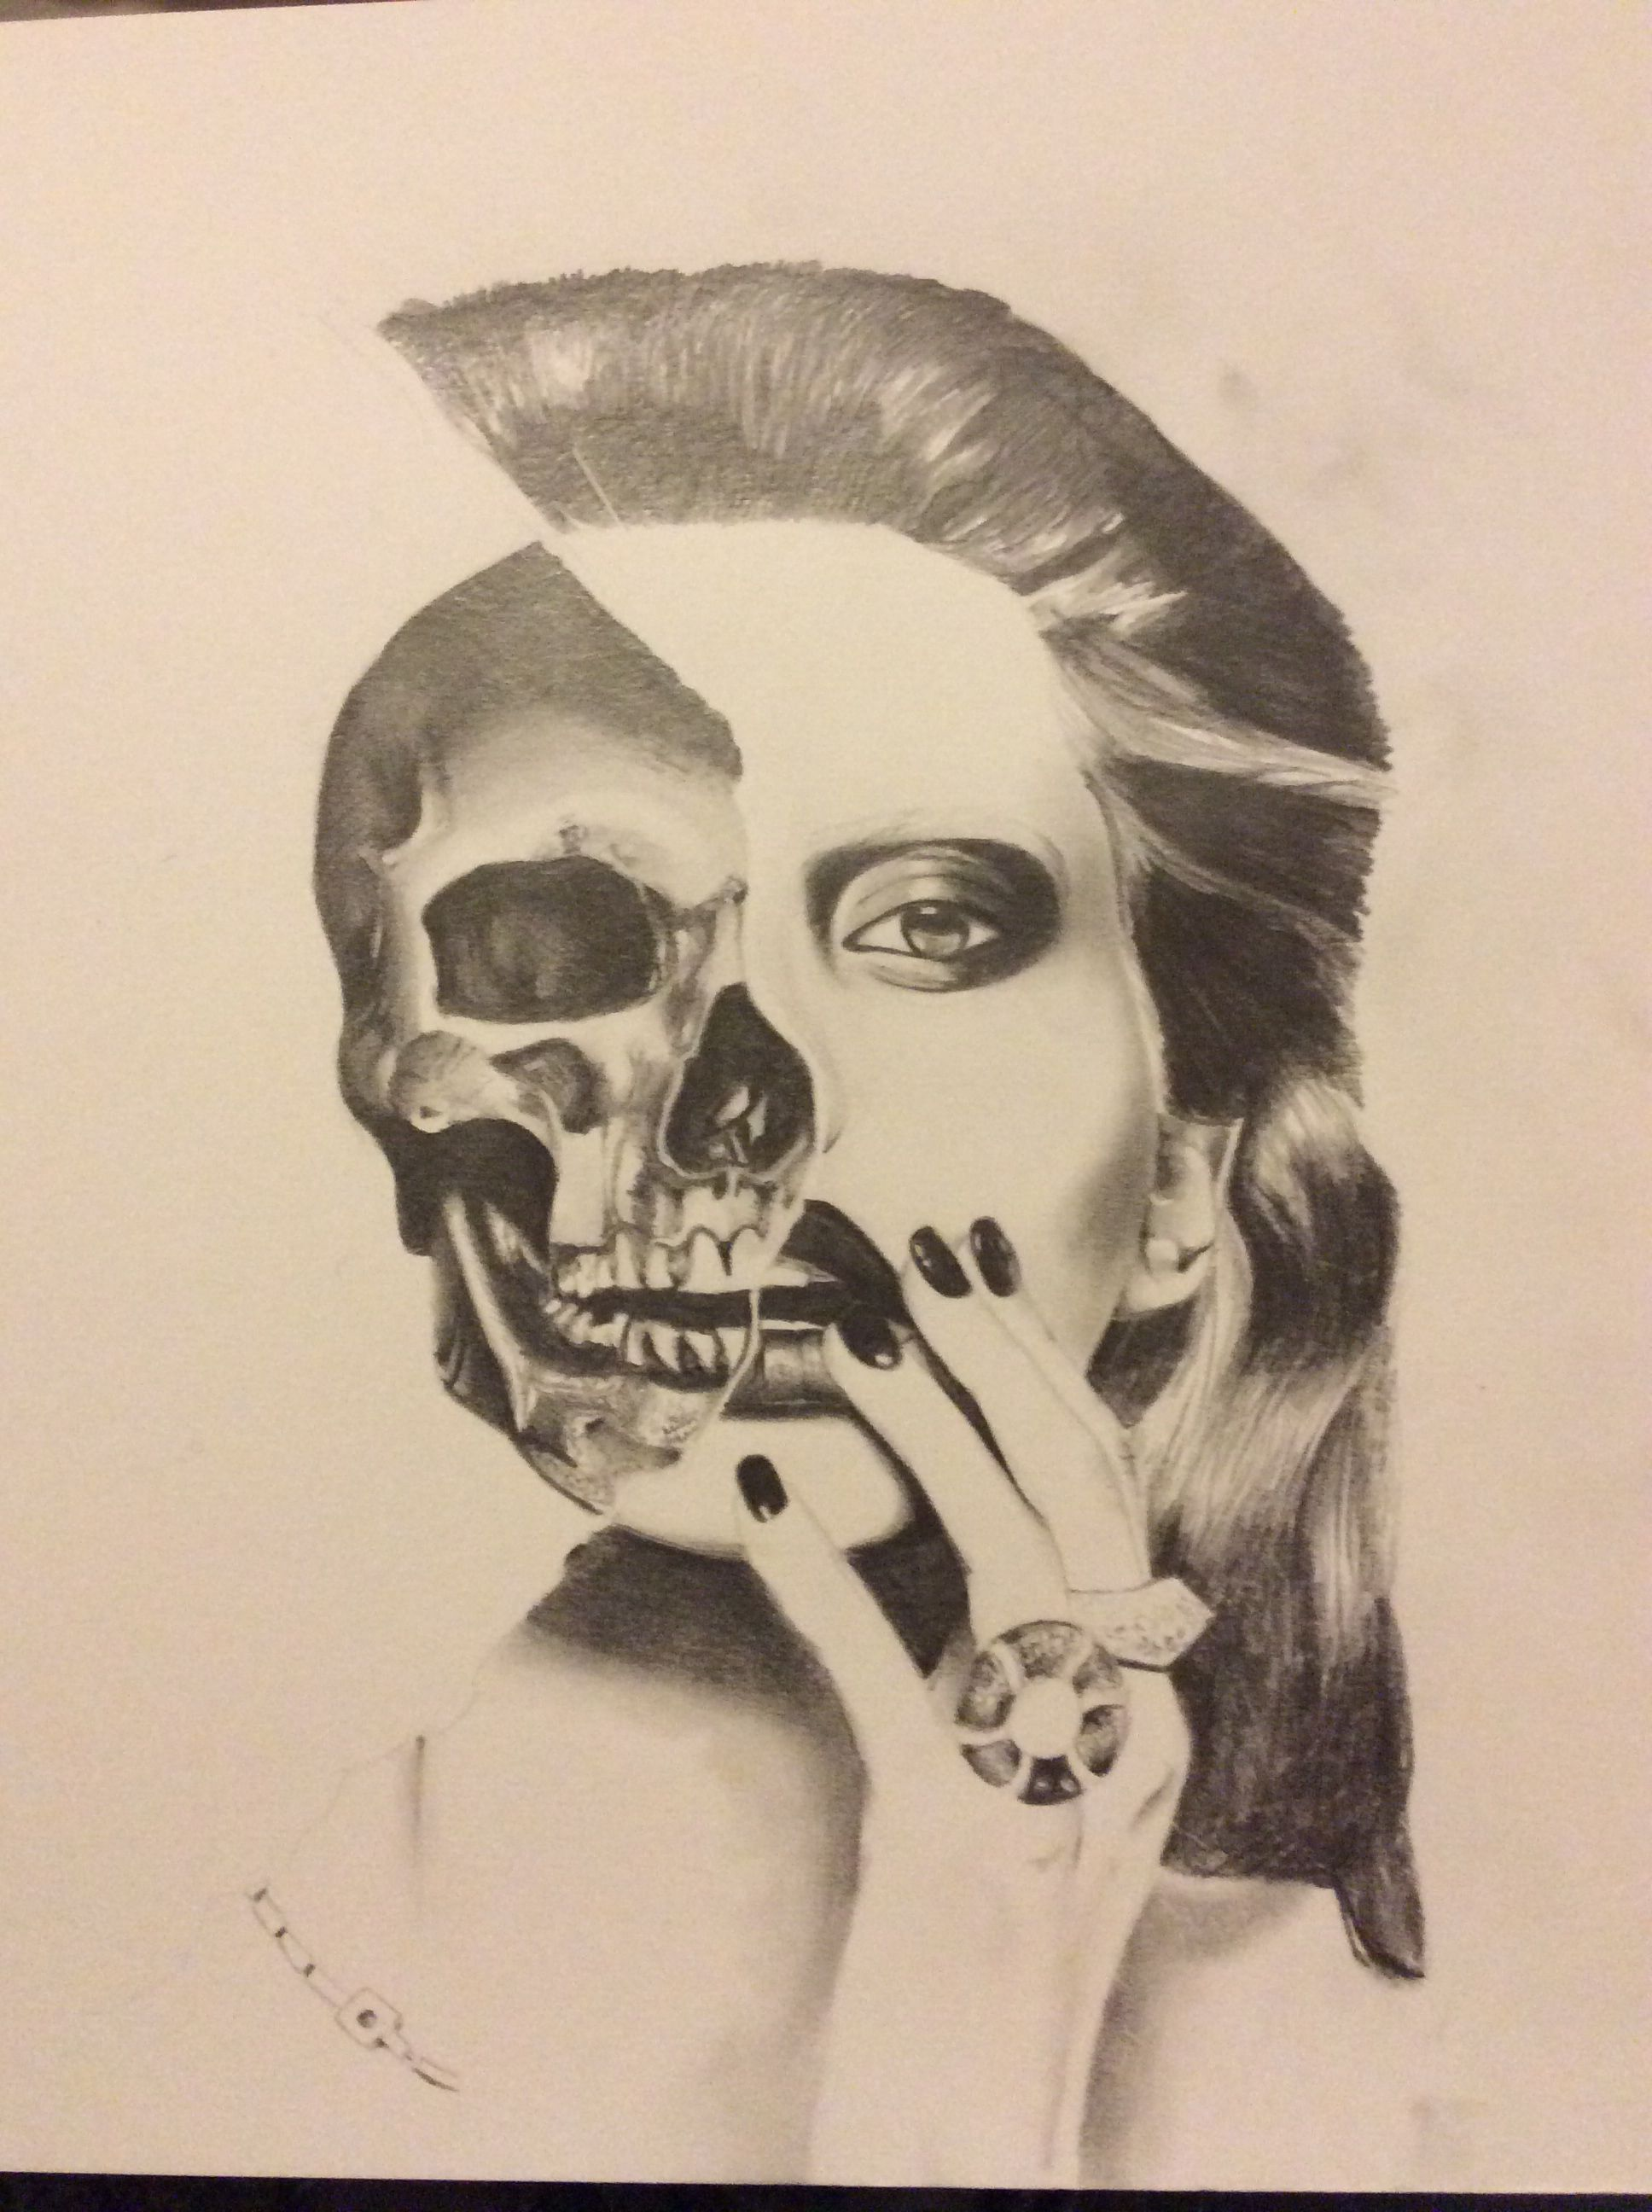 Half Skull, Half Face Drawing | Art in 2019 | Art, Art ...